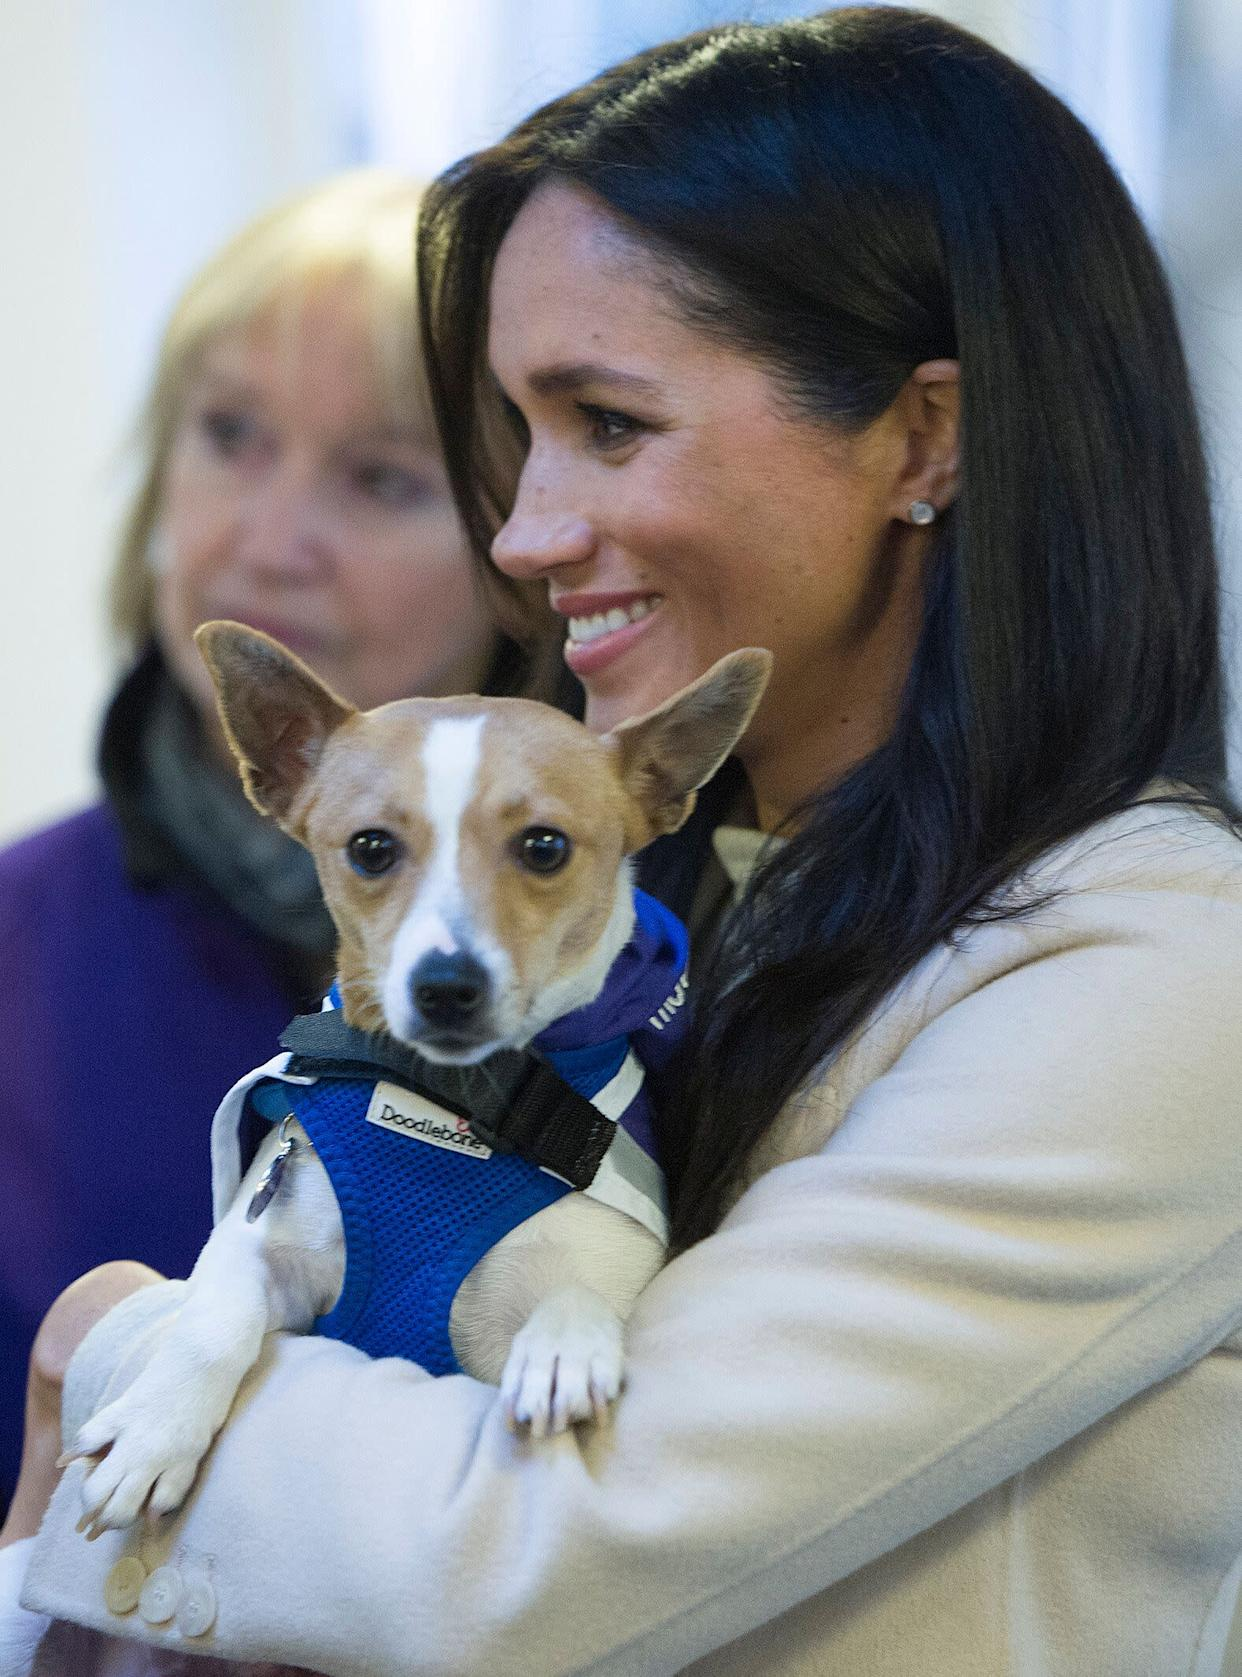 """Meghan, Duchess of Sussex meets a Jack Russell dog named """"Minnie"""" during her visit to the animal welfare charity Mayhew in London on Jan.16. (Photo: EDDIE MULHOLLAND via Getty Images)"""